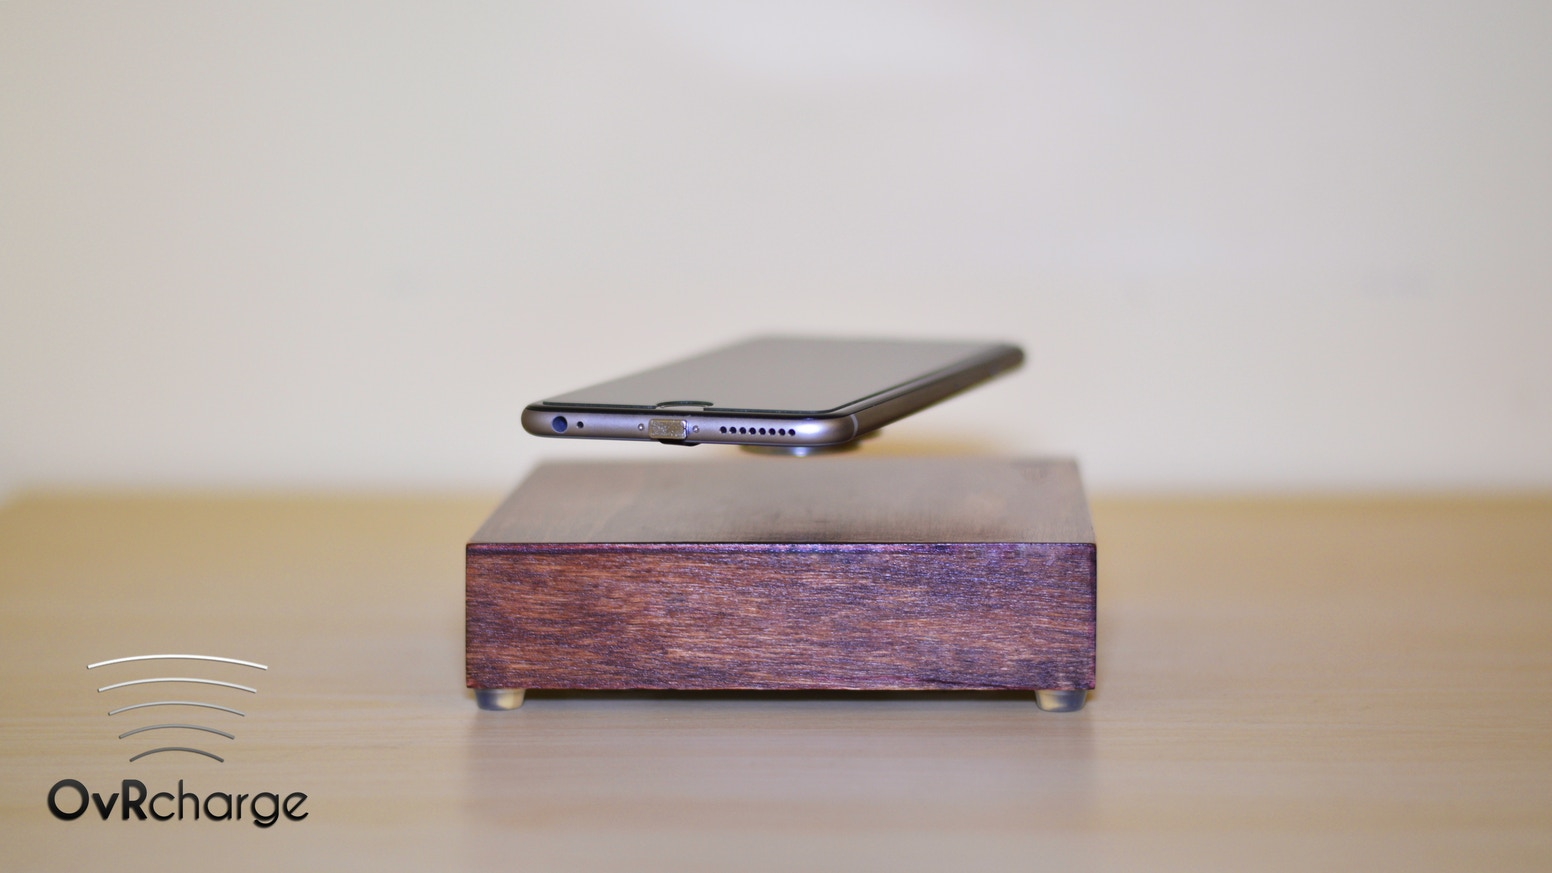 OvRcharge: Levitating Wireless Charger by AR Designs